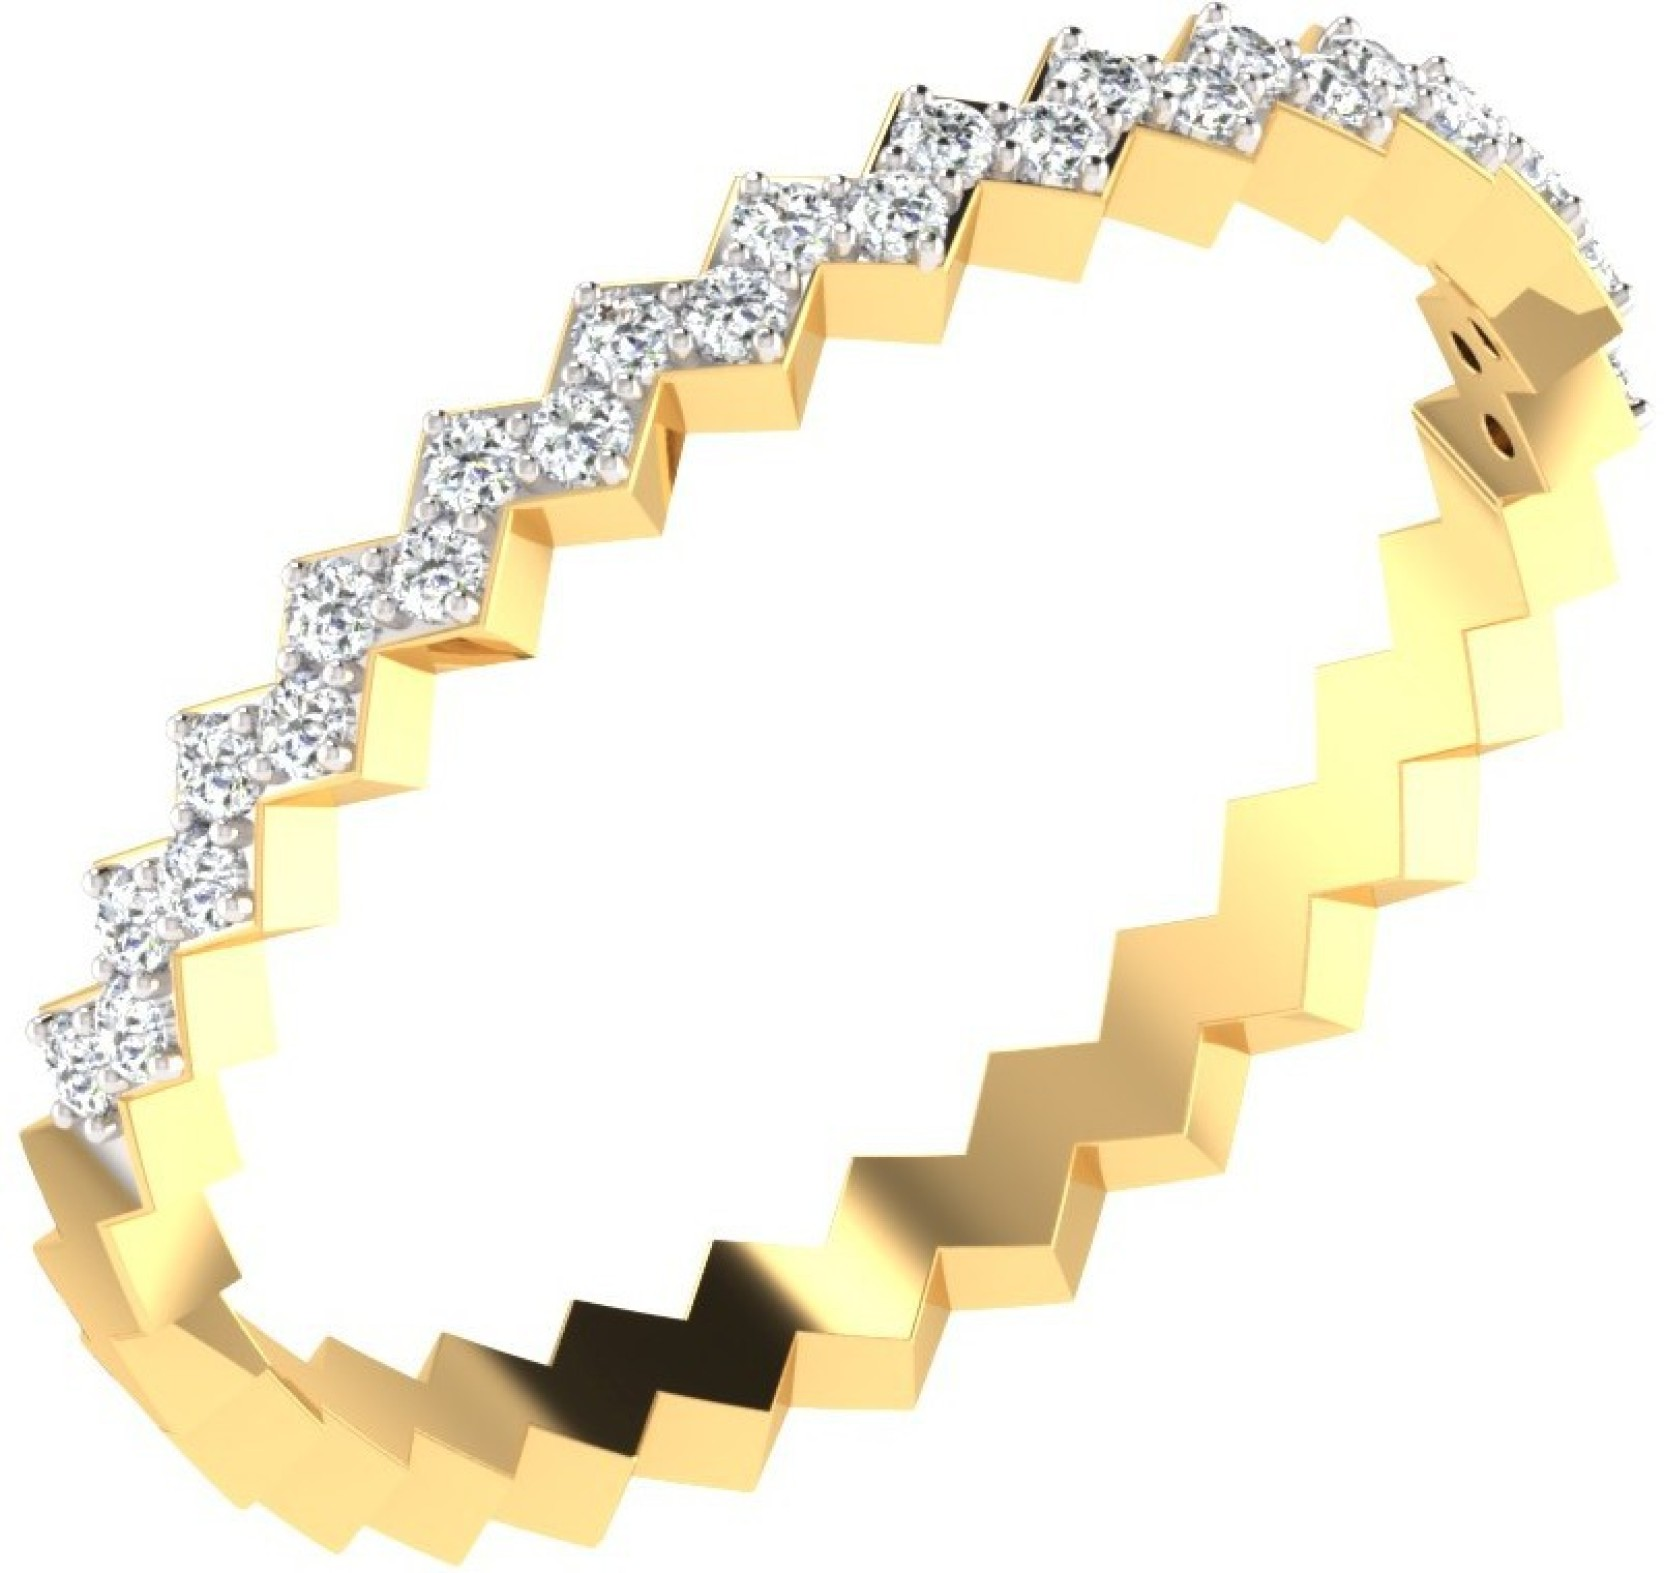 His & Her 0 14 Cts Diamond Zigzag Design Ring in 9KT Yellow Gold 9kt